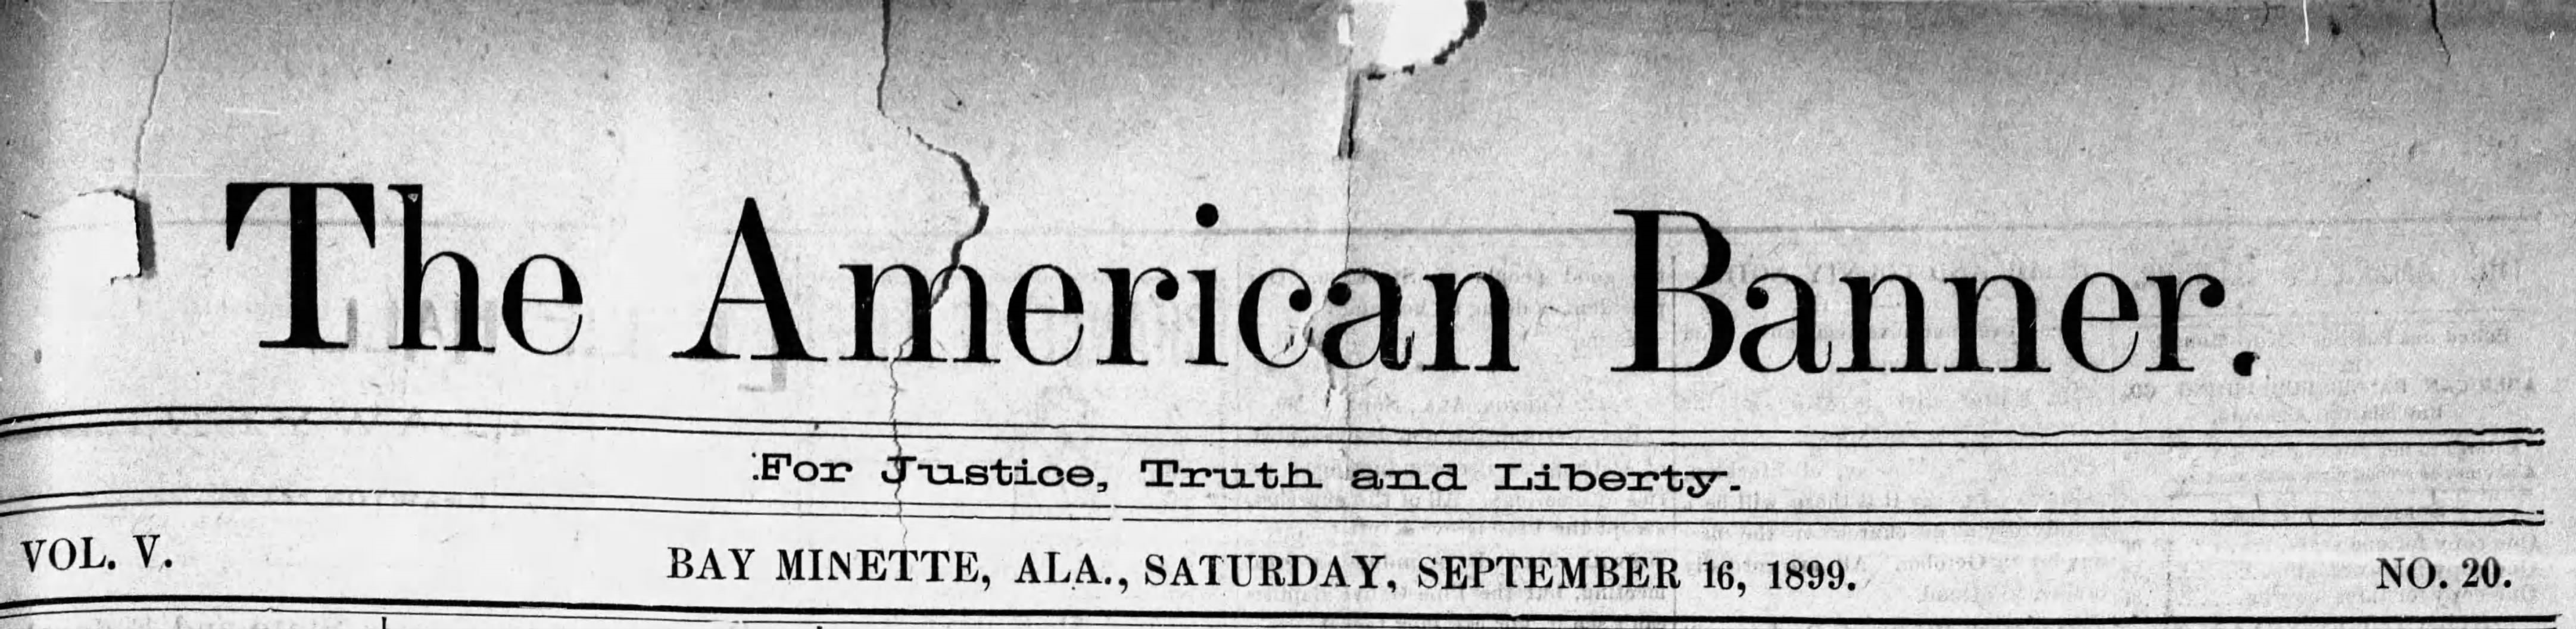 Patron - Local news from The American Banner (Bay Minette, Alabama, September 16, 1899